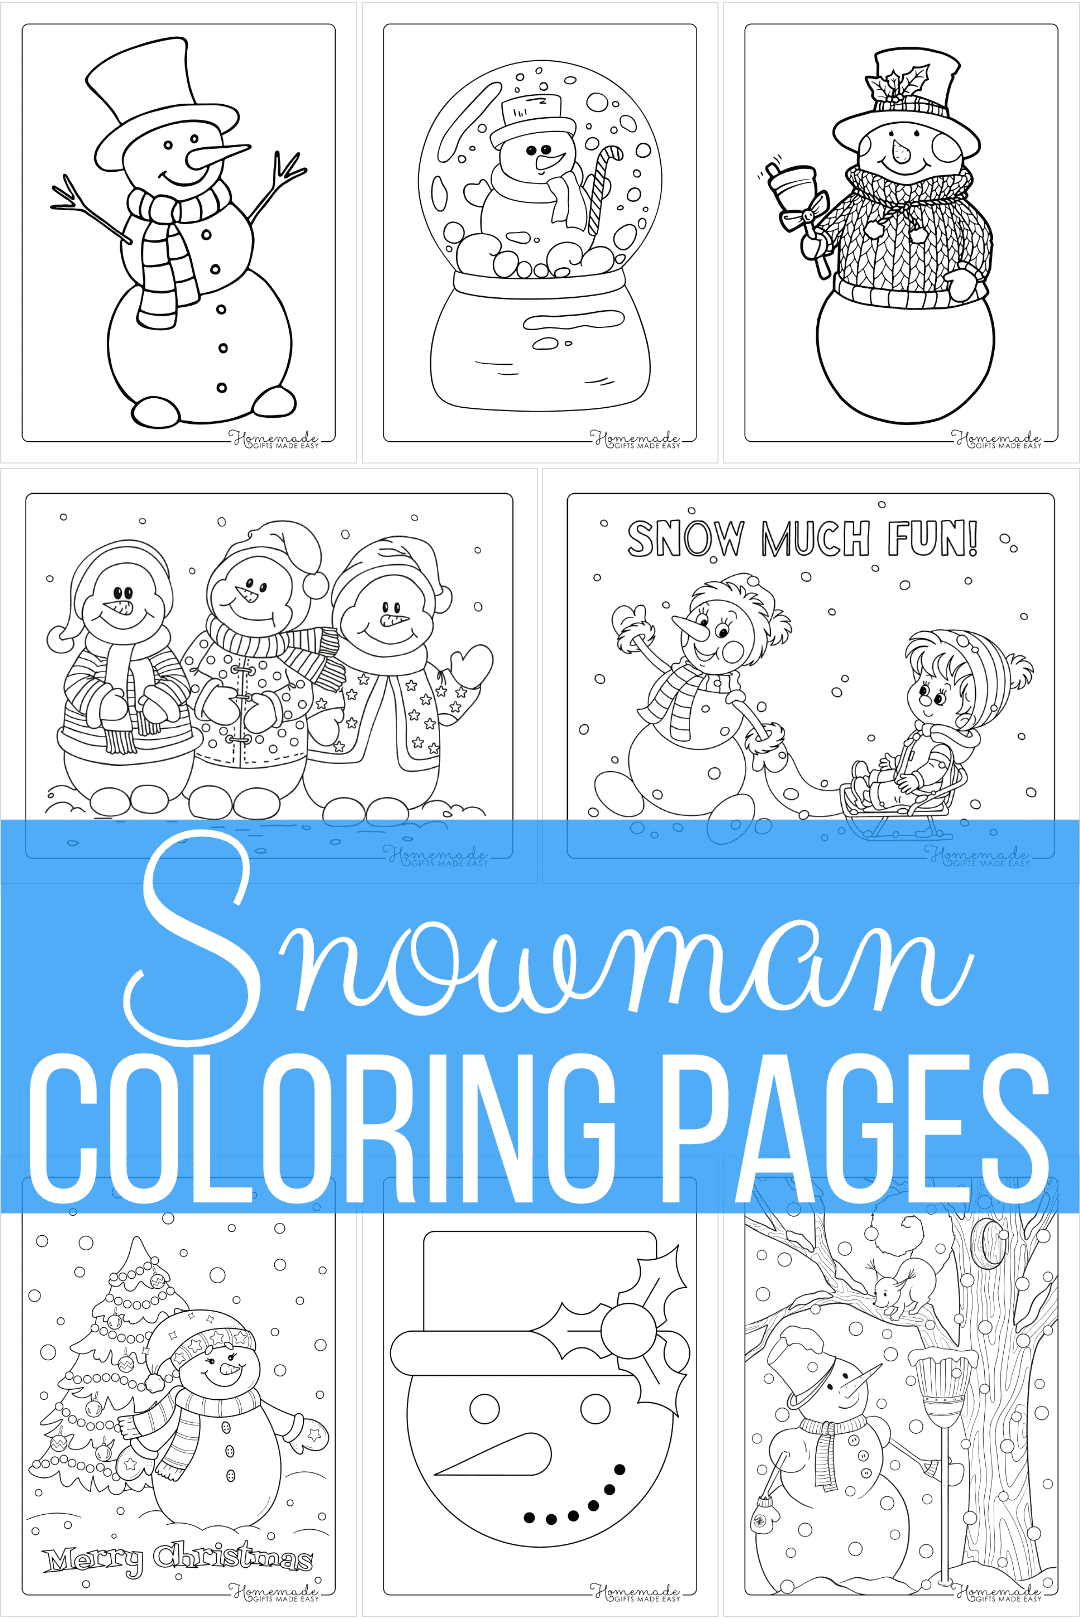 Free Printable Snowman Coloring Pages | 60+ Designs